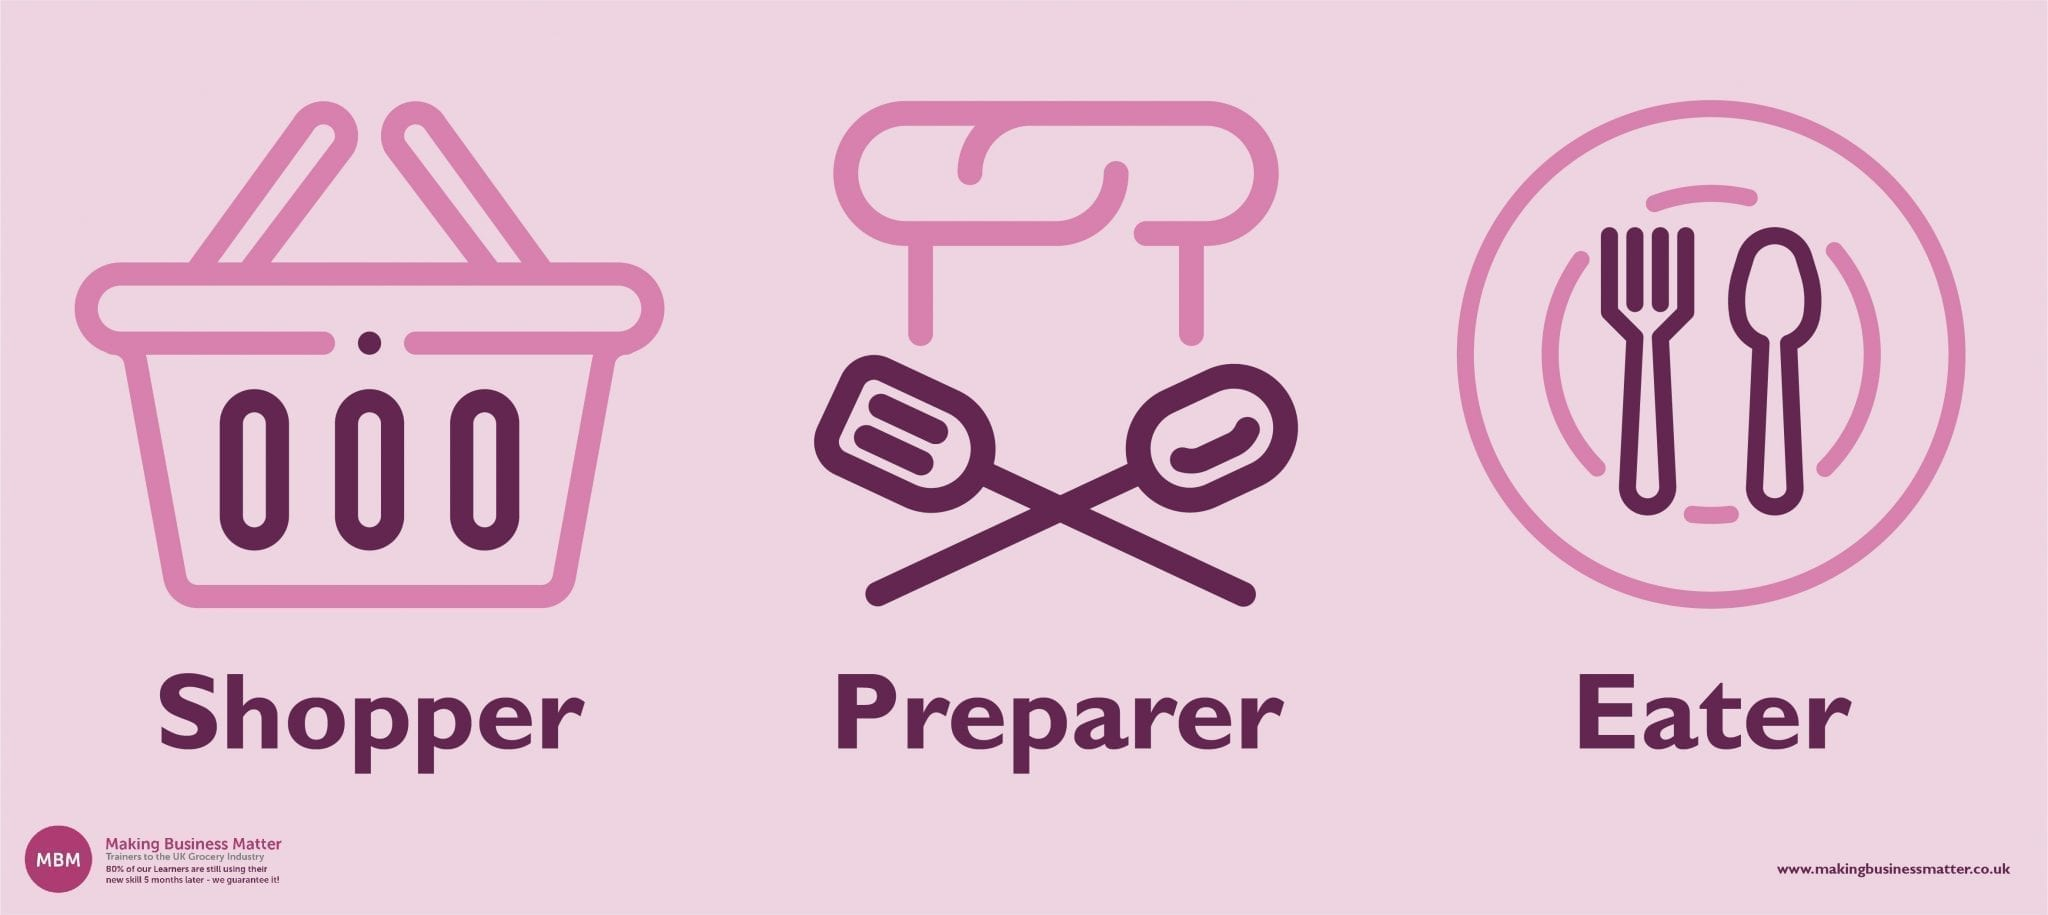 Image showing 3 icons, shopper, preparer, eater